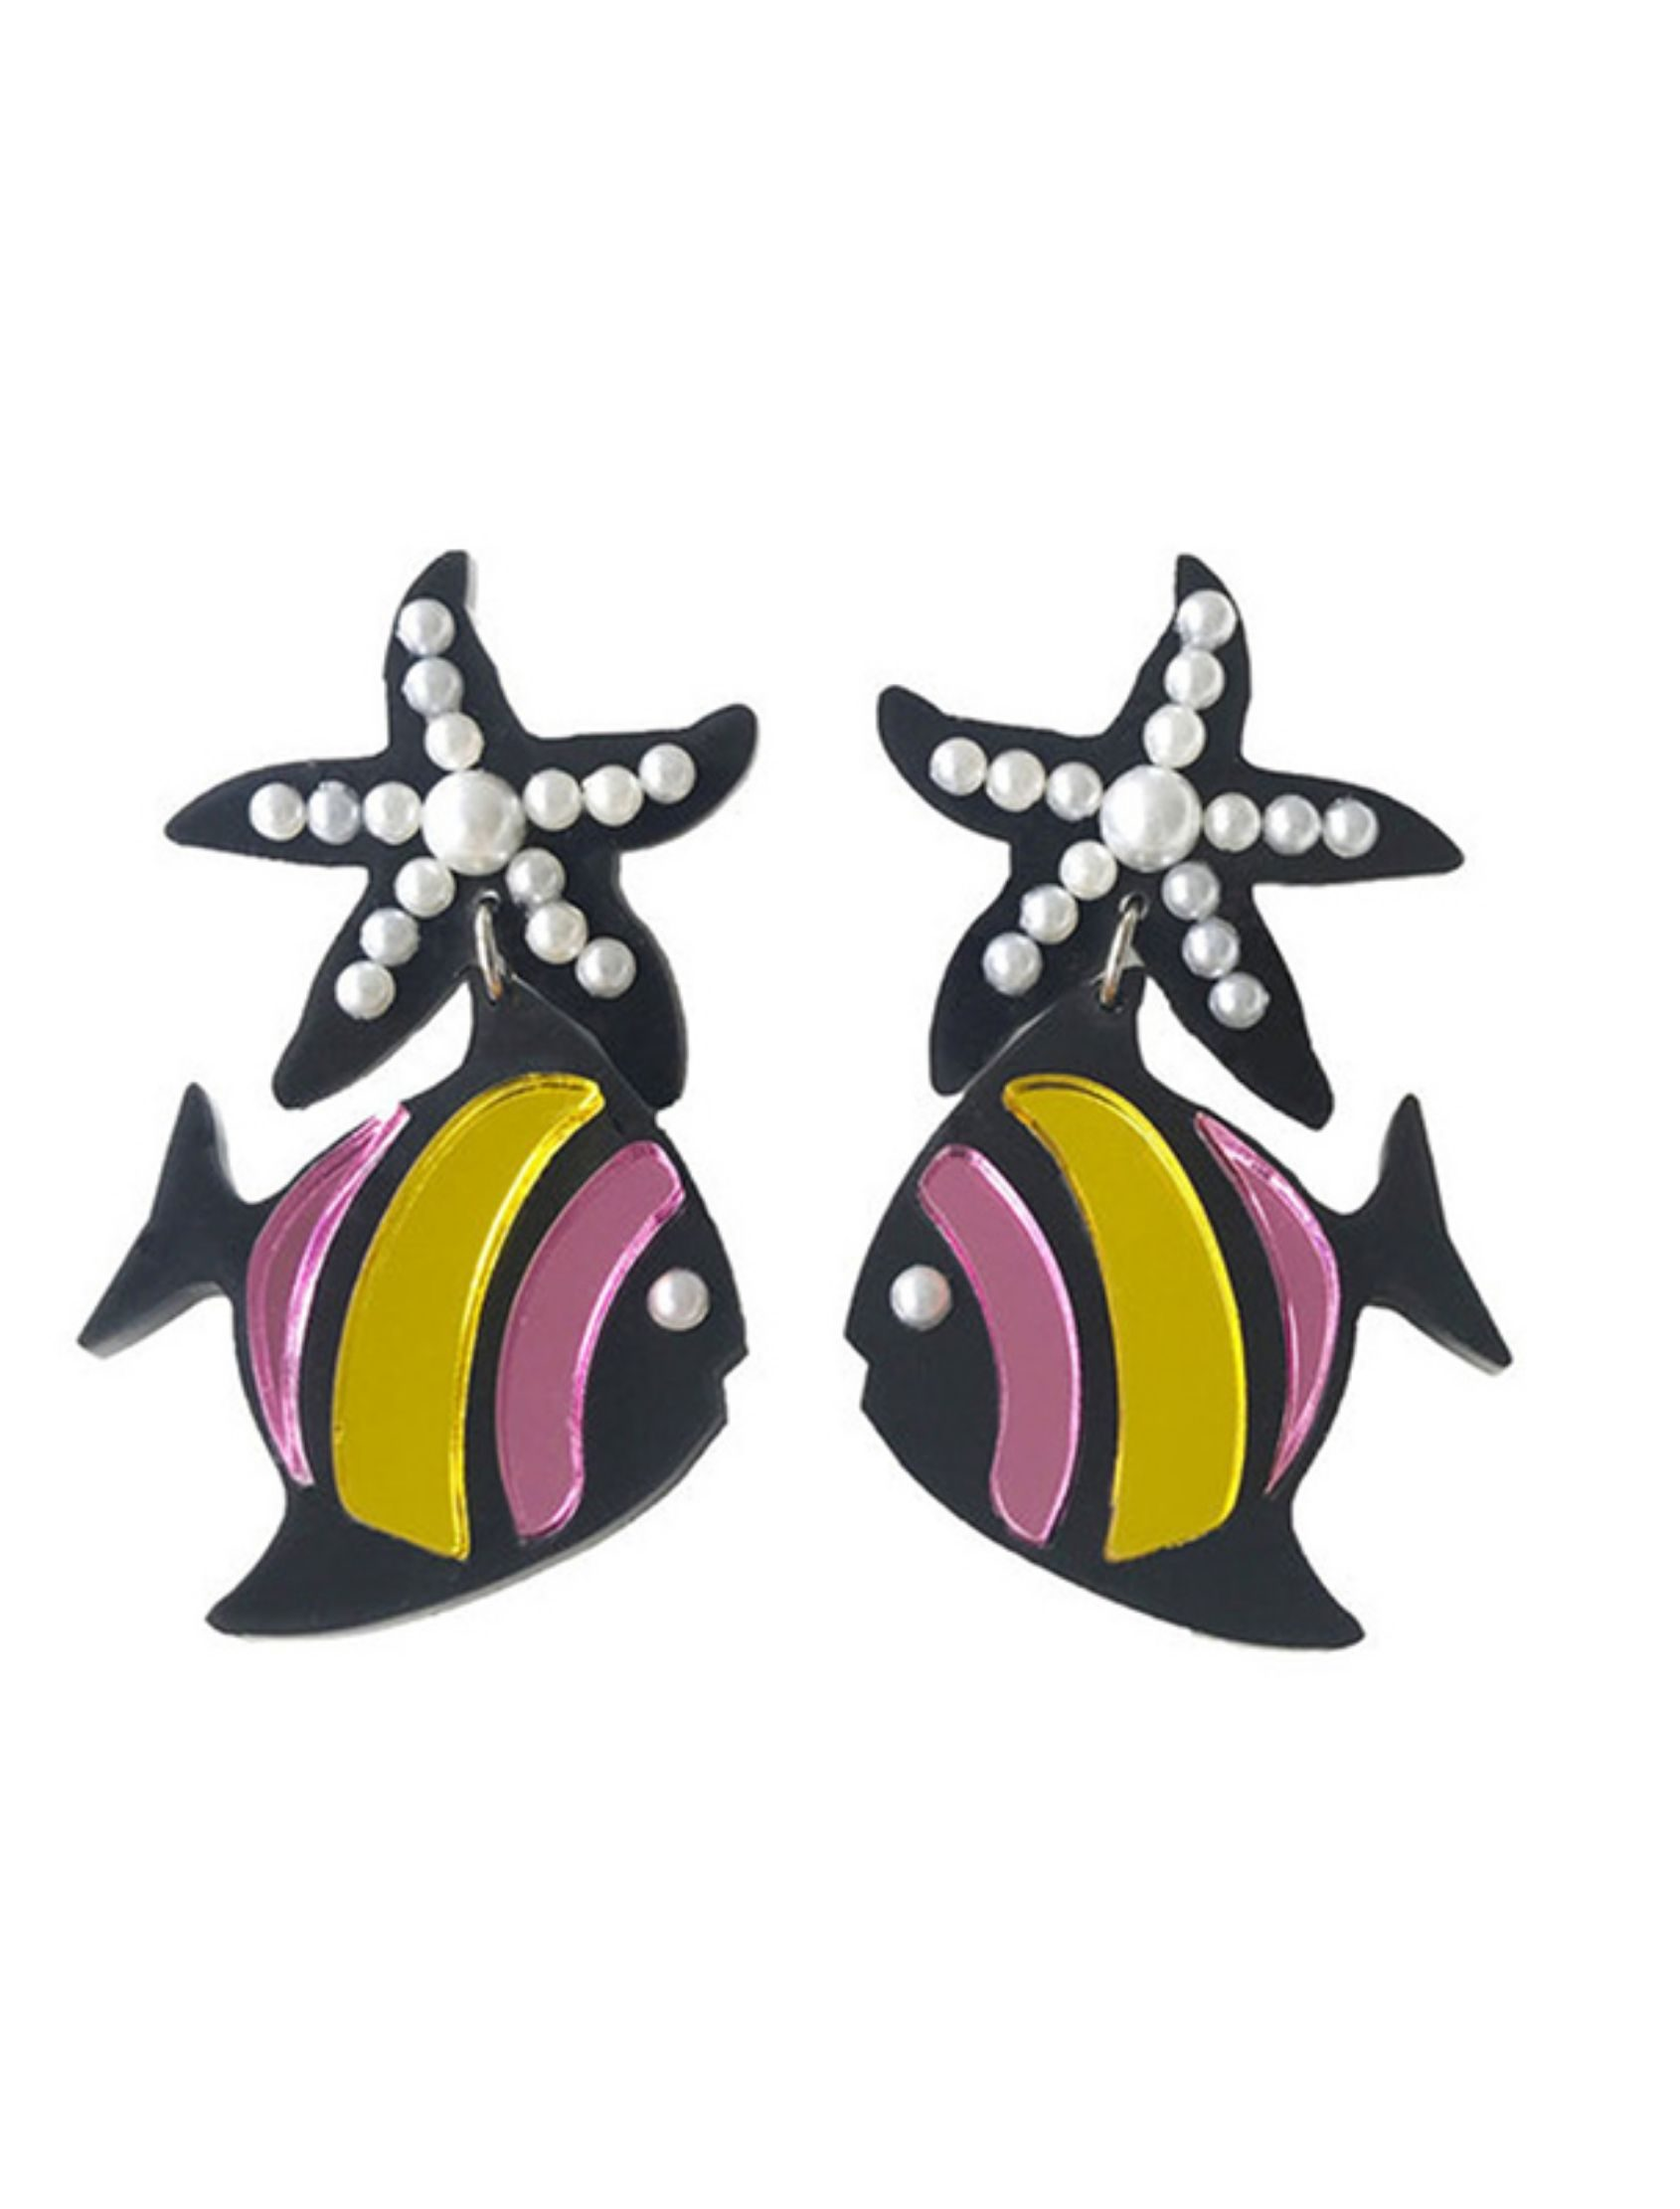 pendientes starfish de metacrilato multicolor con acero inoxidable y perlas